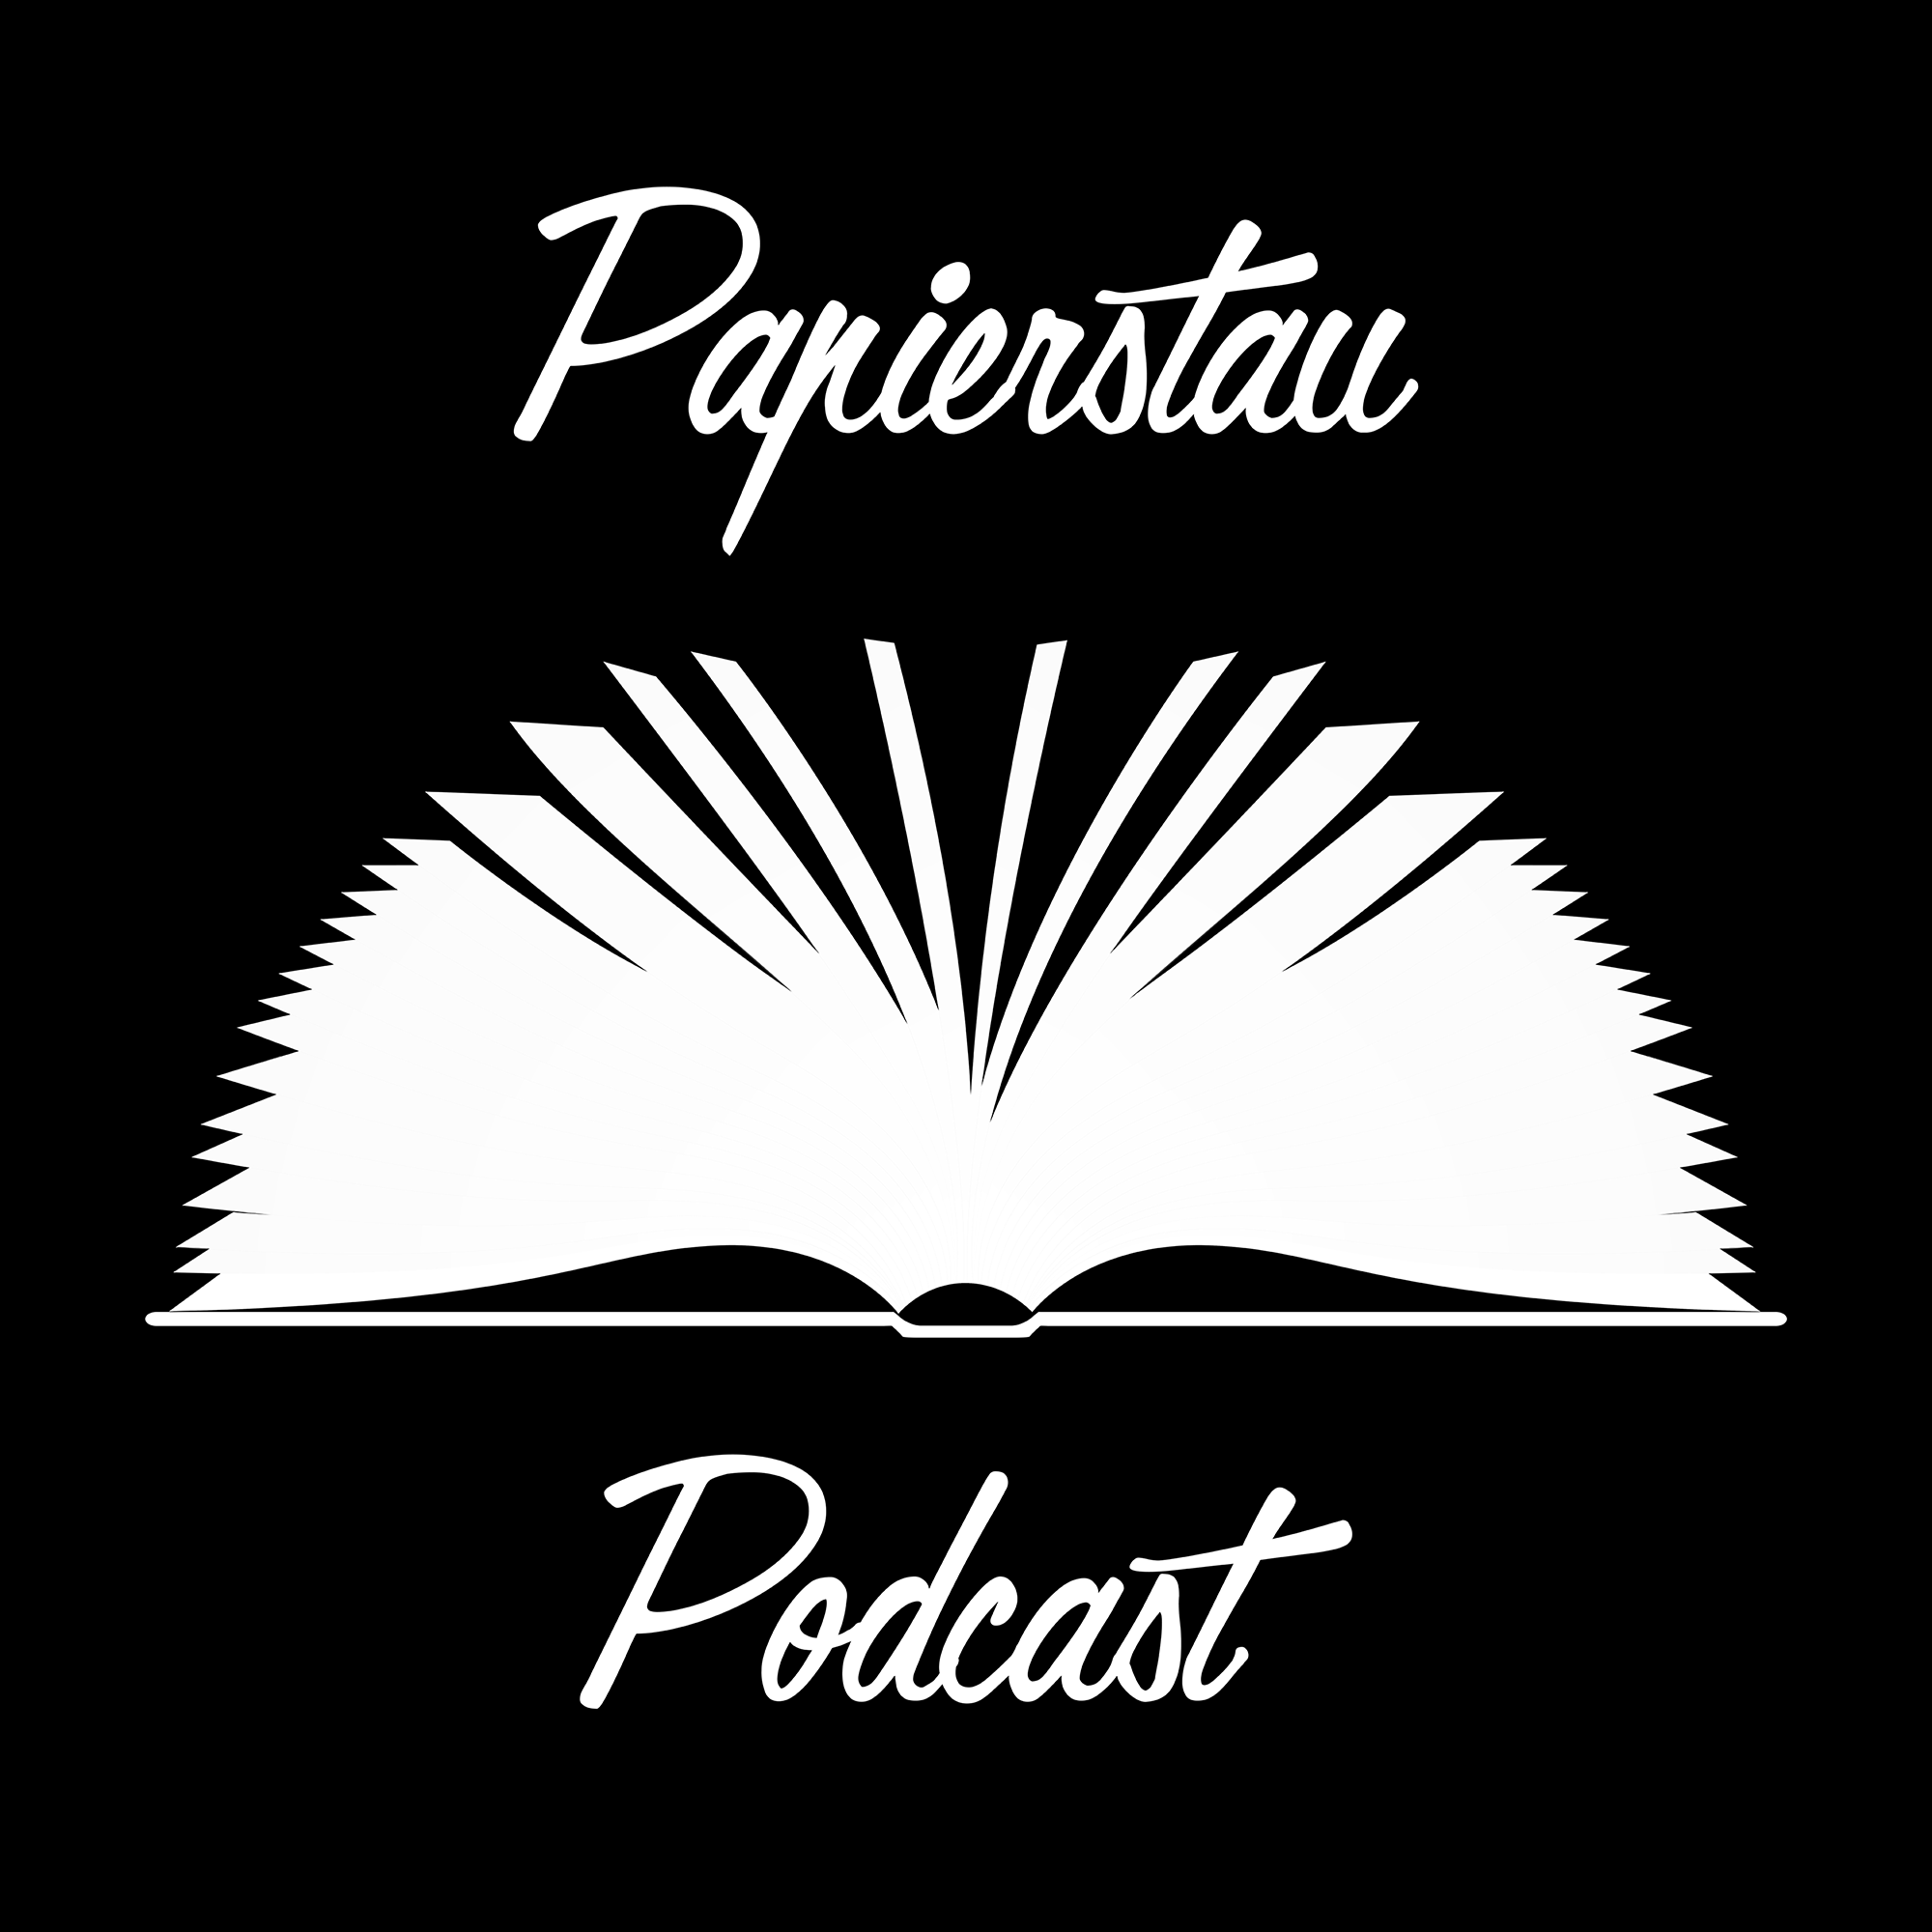 Papierstau Podcast